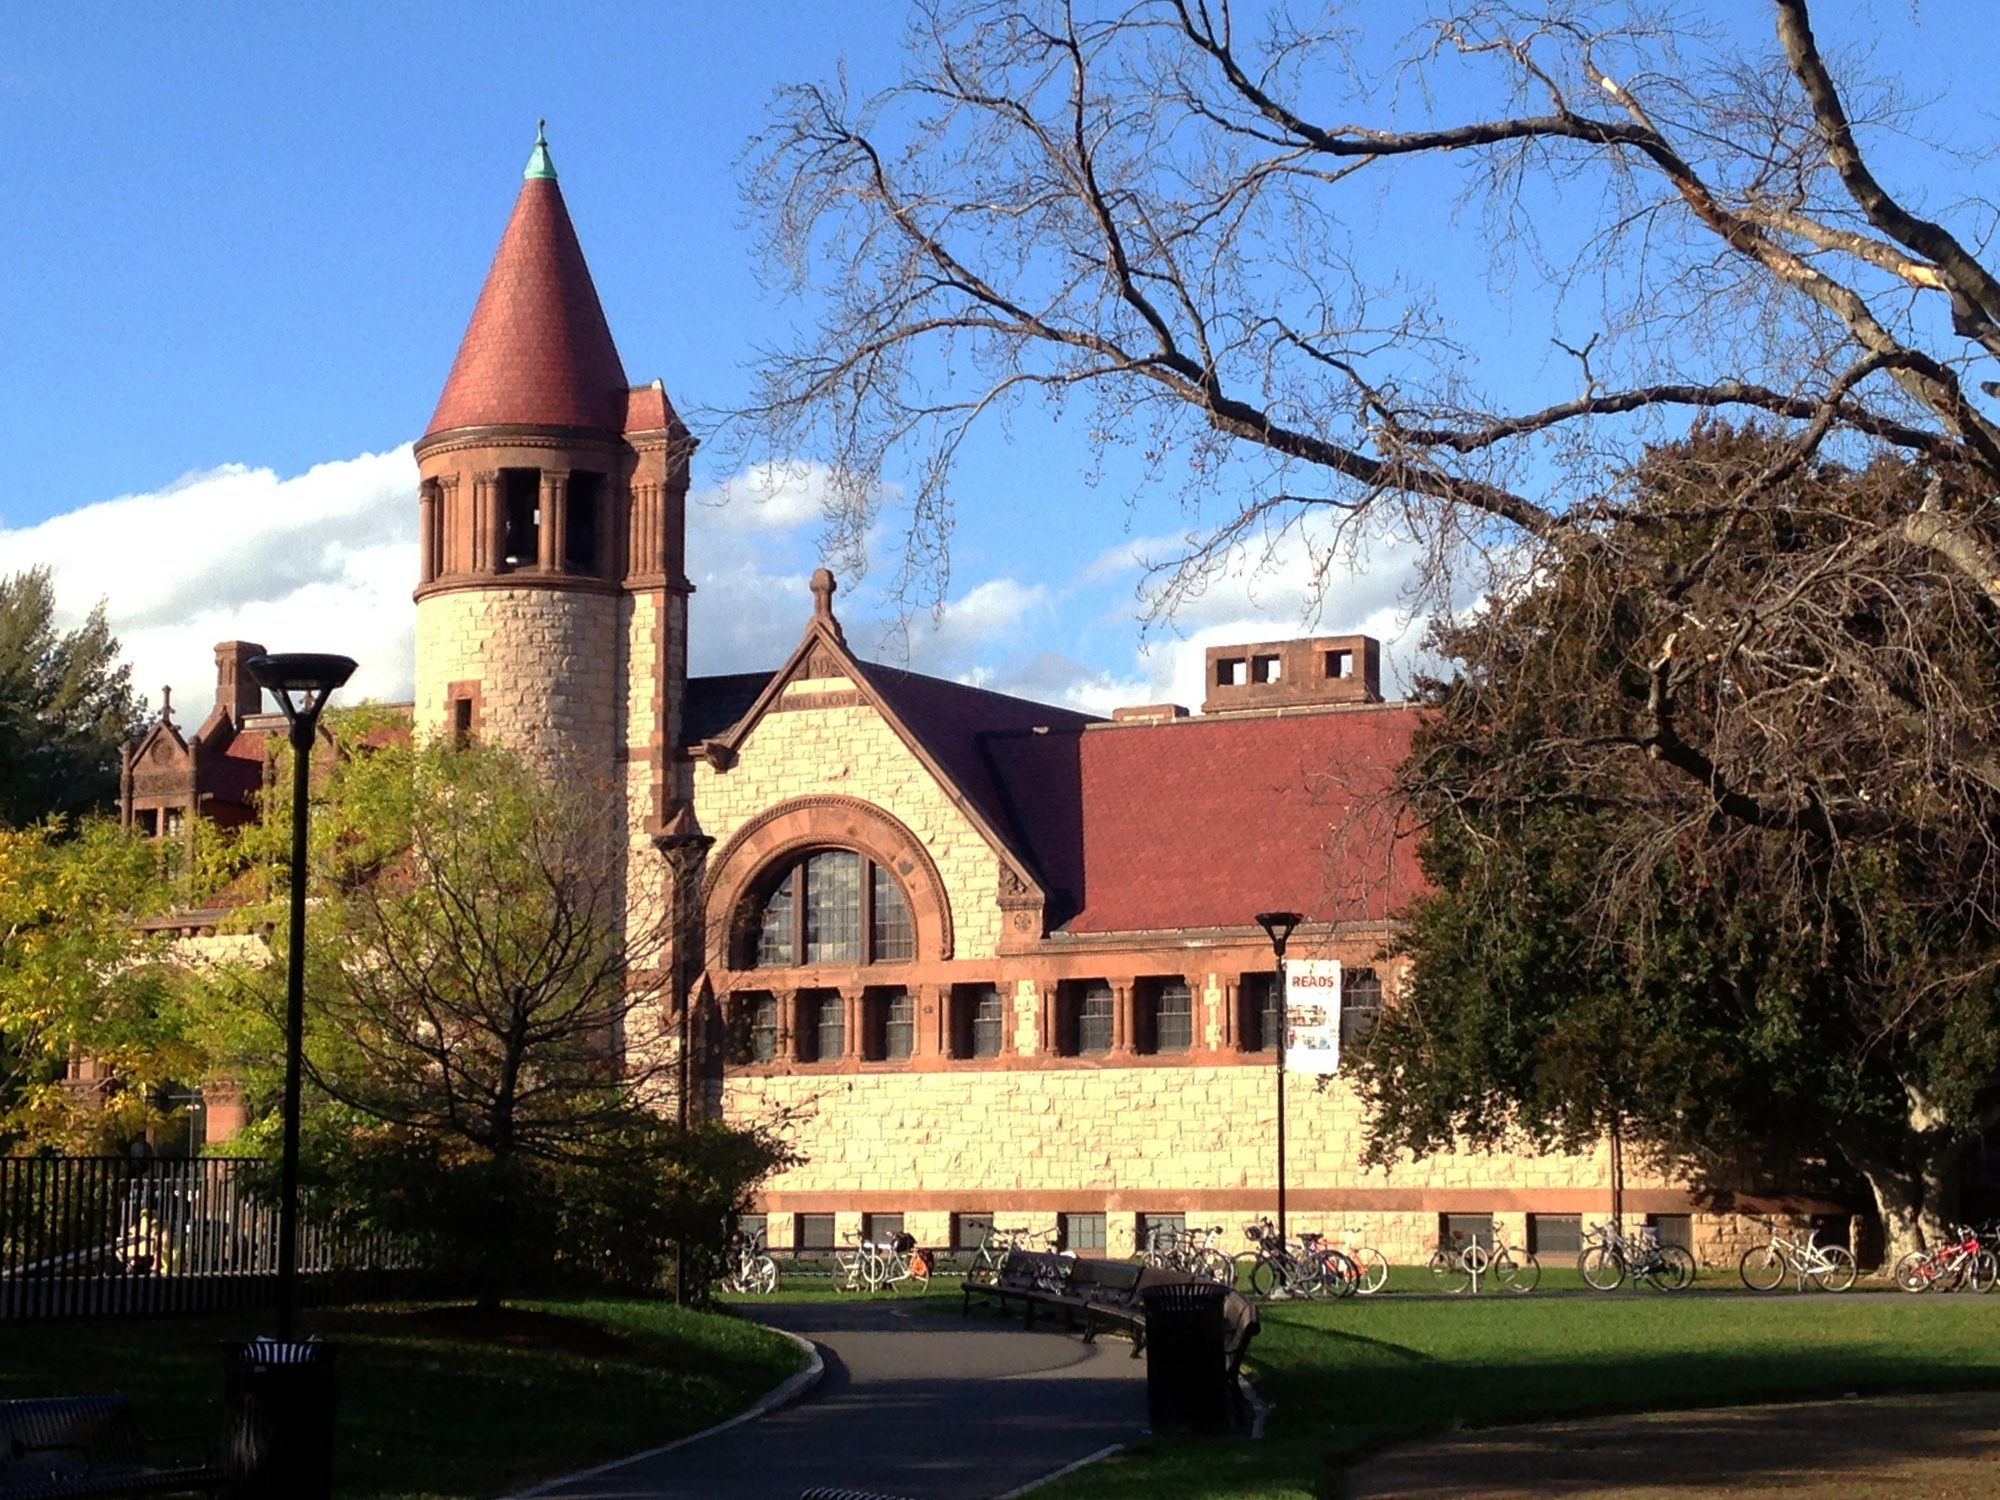 Distinctly known for its reddish stone exterior ad ts turret, the historic building of the Cambridge Public Library was built in 1888.